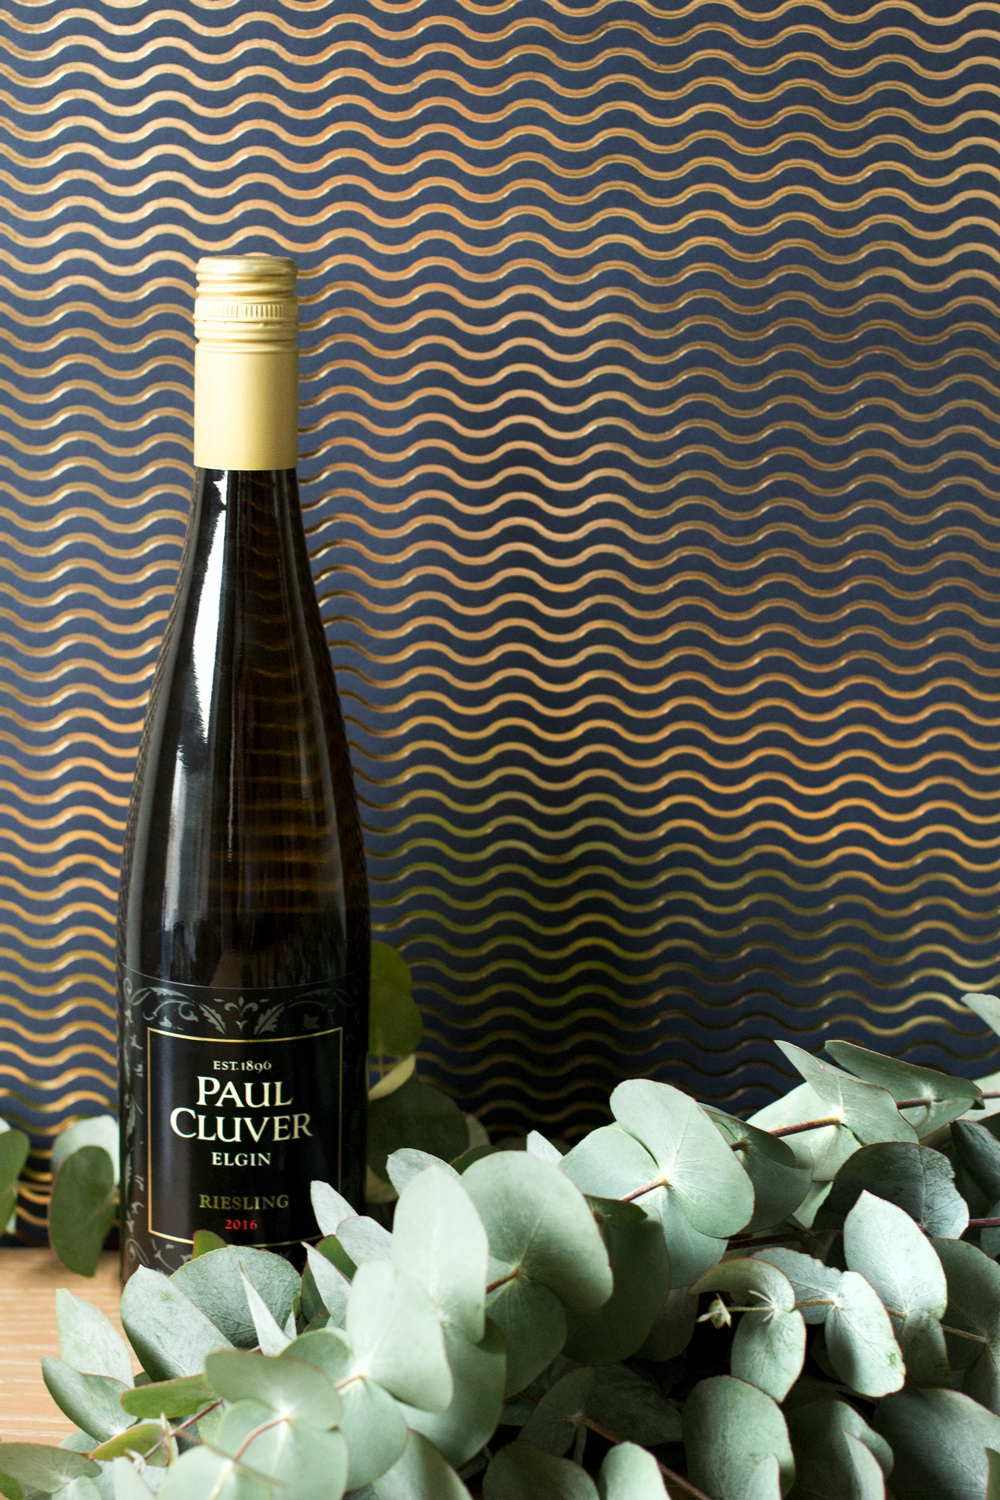 Bottle Bitches Riesling Wine Review Paul Cluver Ferricrete Riesling 2016 from Elgin South Africa